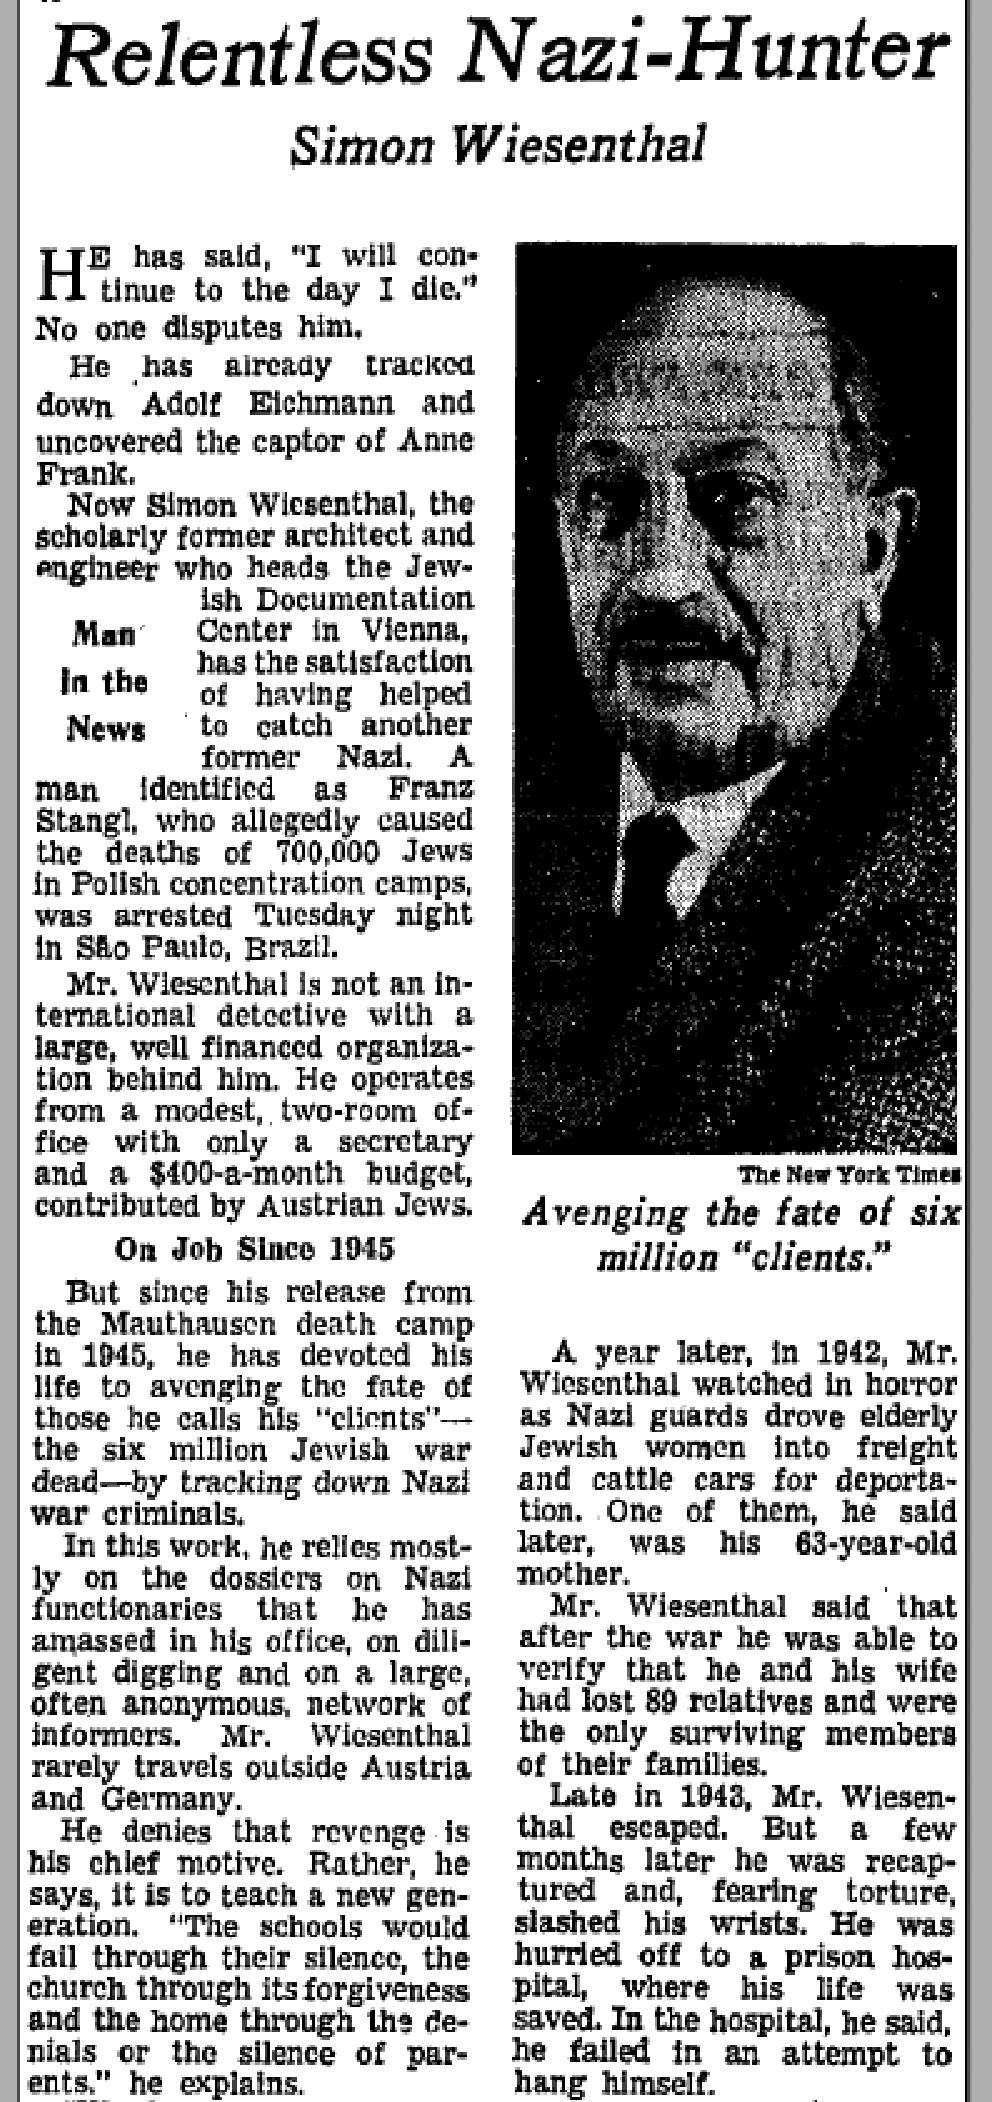 """<p>A March 3, 1967, New York Times article about Simon Wiesenthal entitled, """"Relentless Nazi-Hunter.""""</p>"""